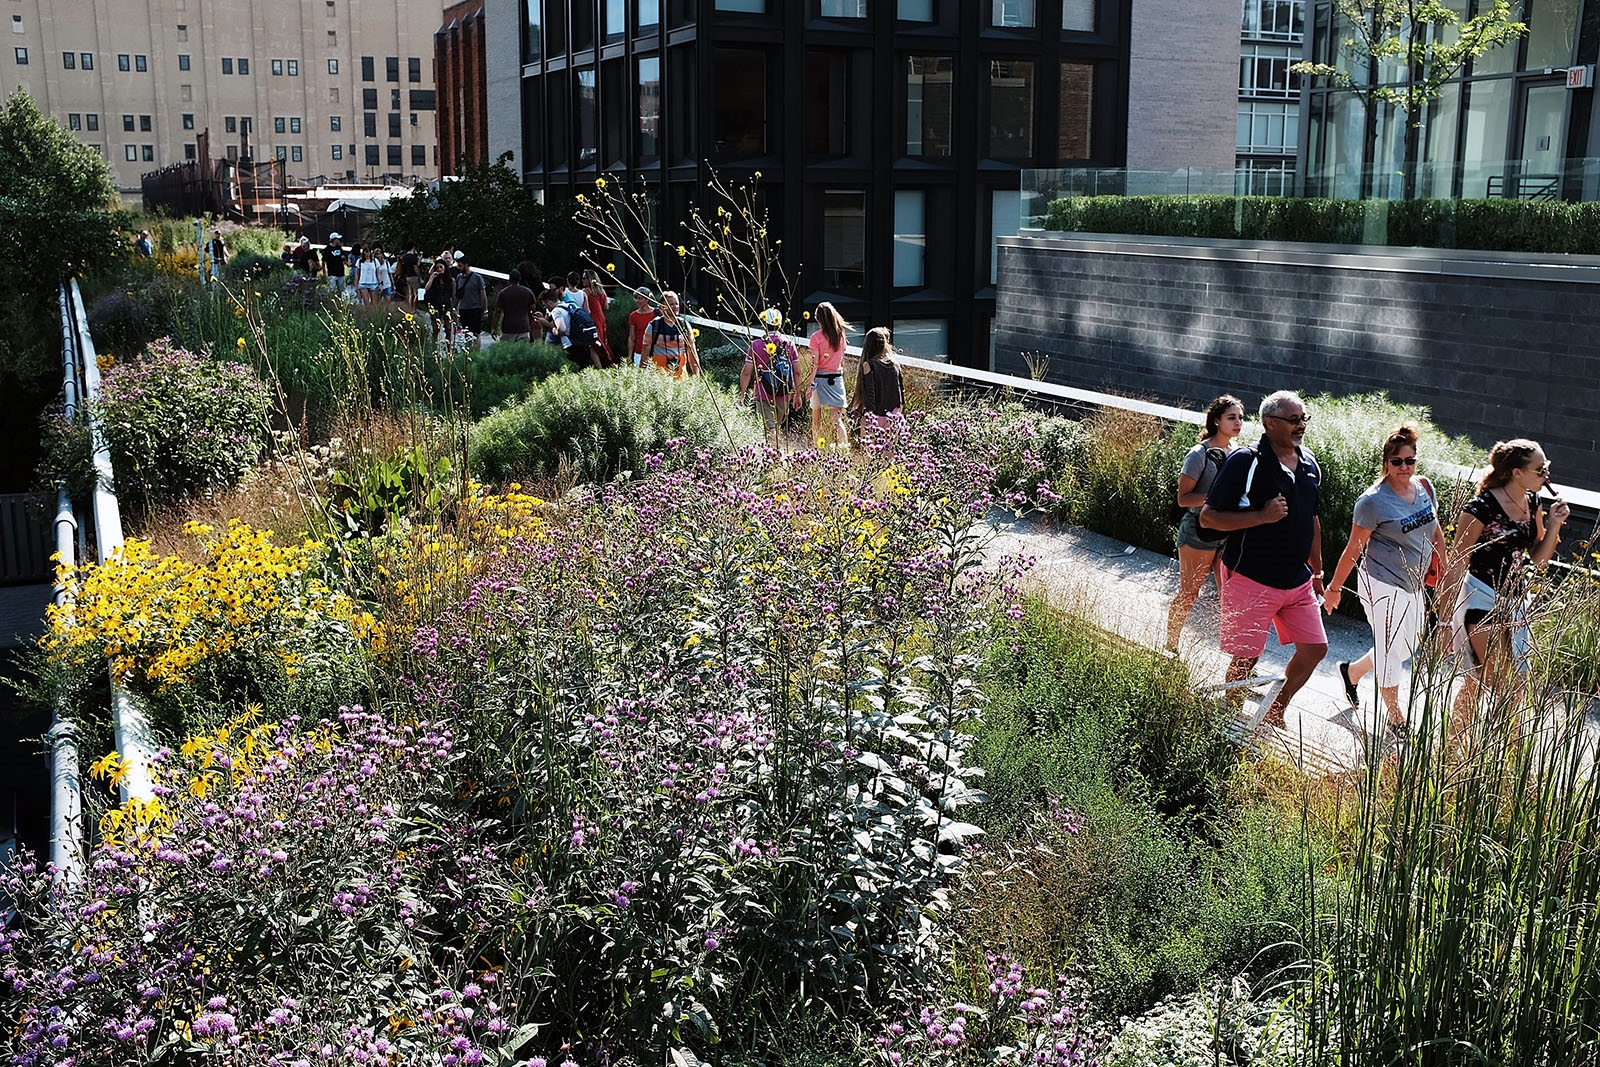 There is precedent: In lower Manhattan, a stretch of rail line has been converted into High Line Park, shown here.